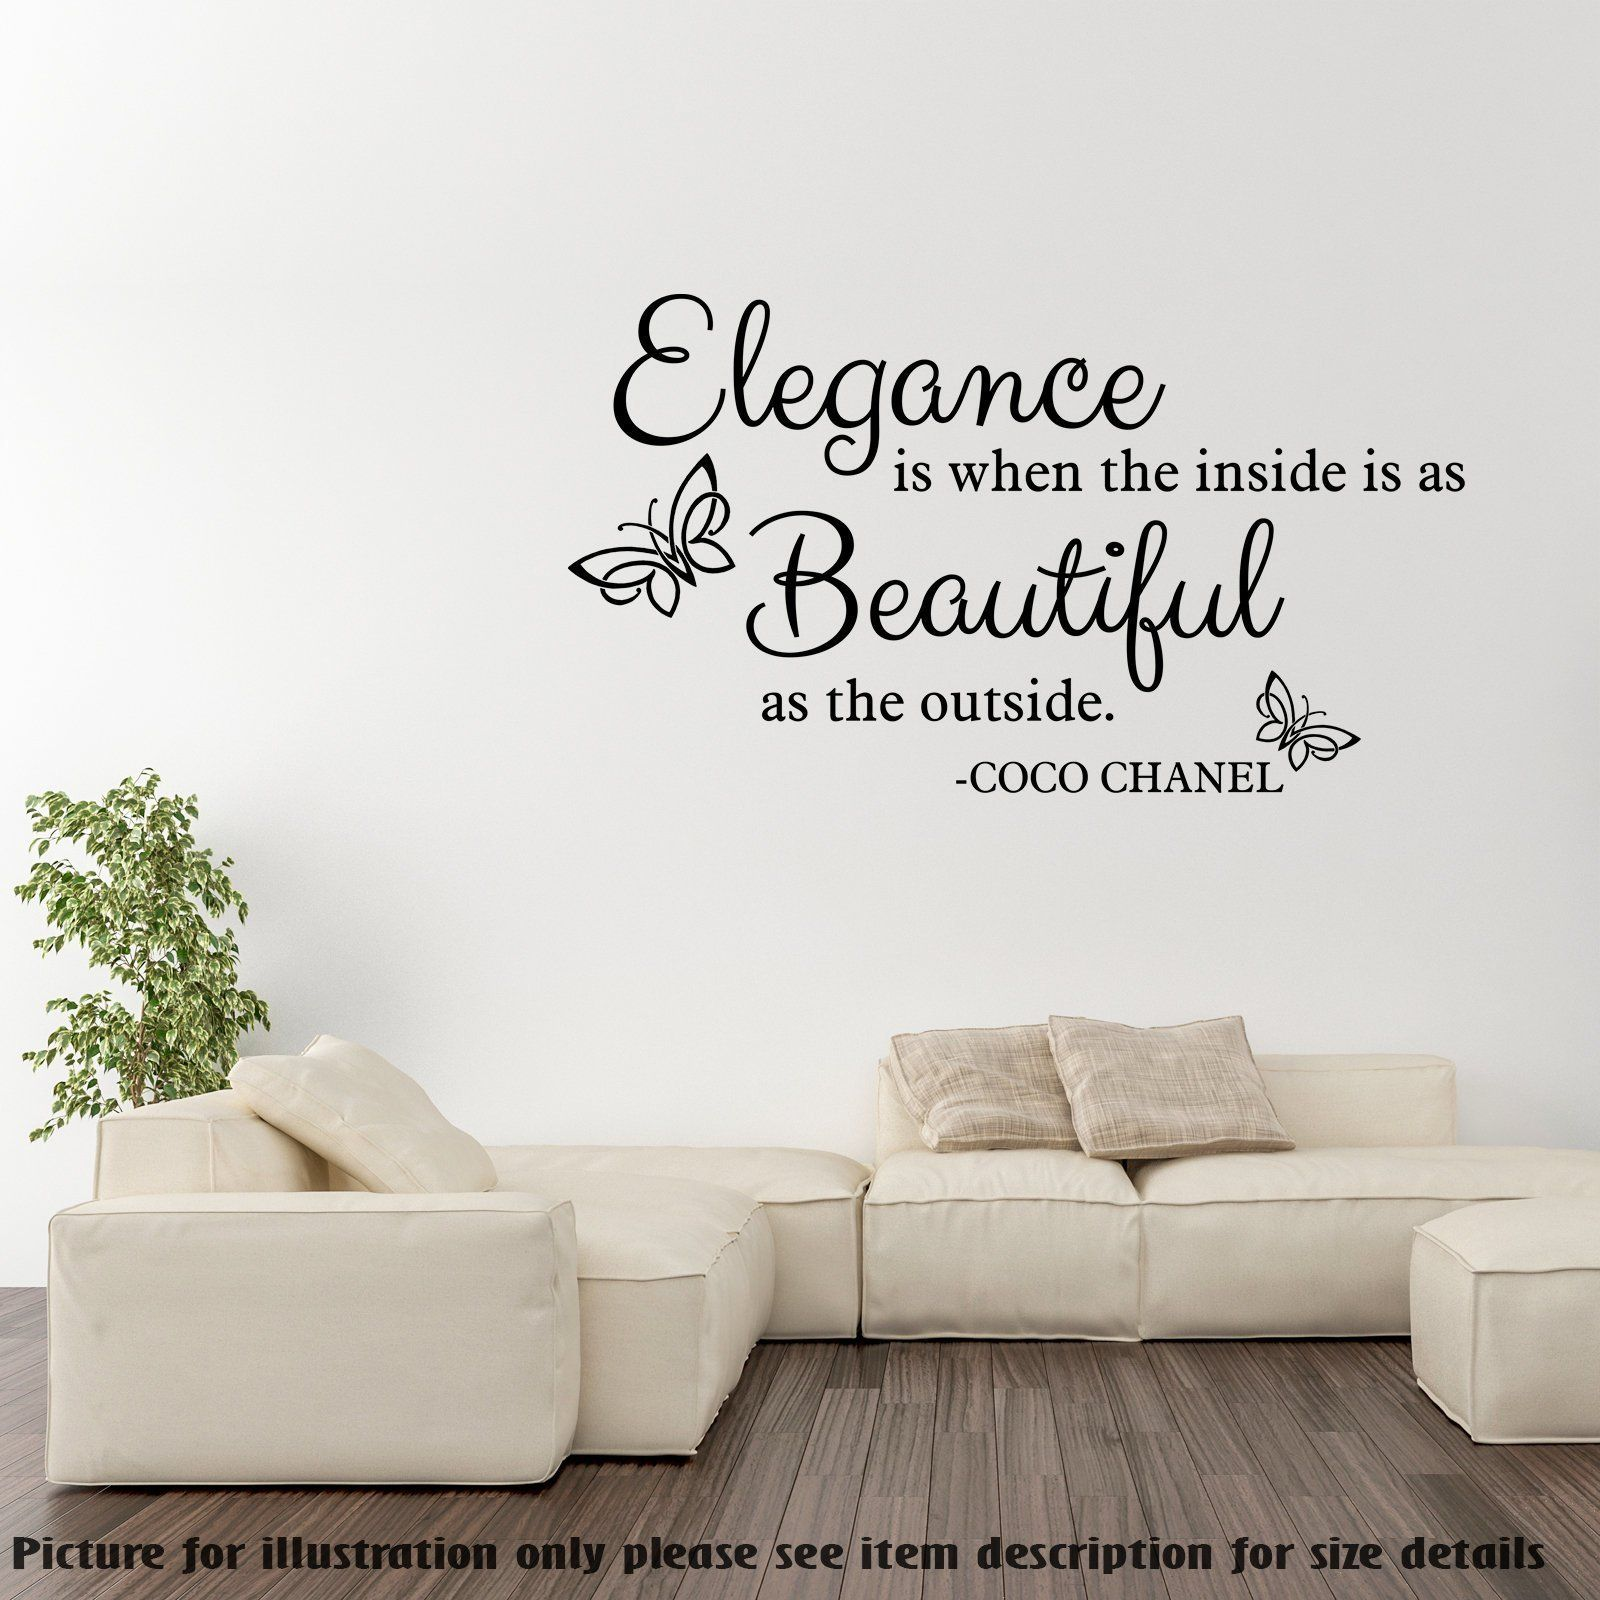 Elegance is when the inside is as beautiful as the outside coco chanel quotes